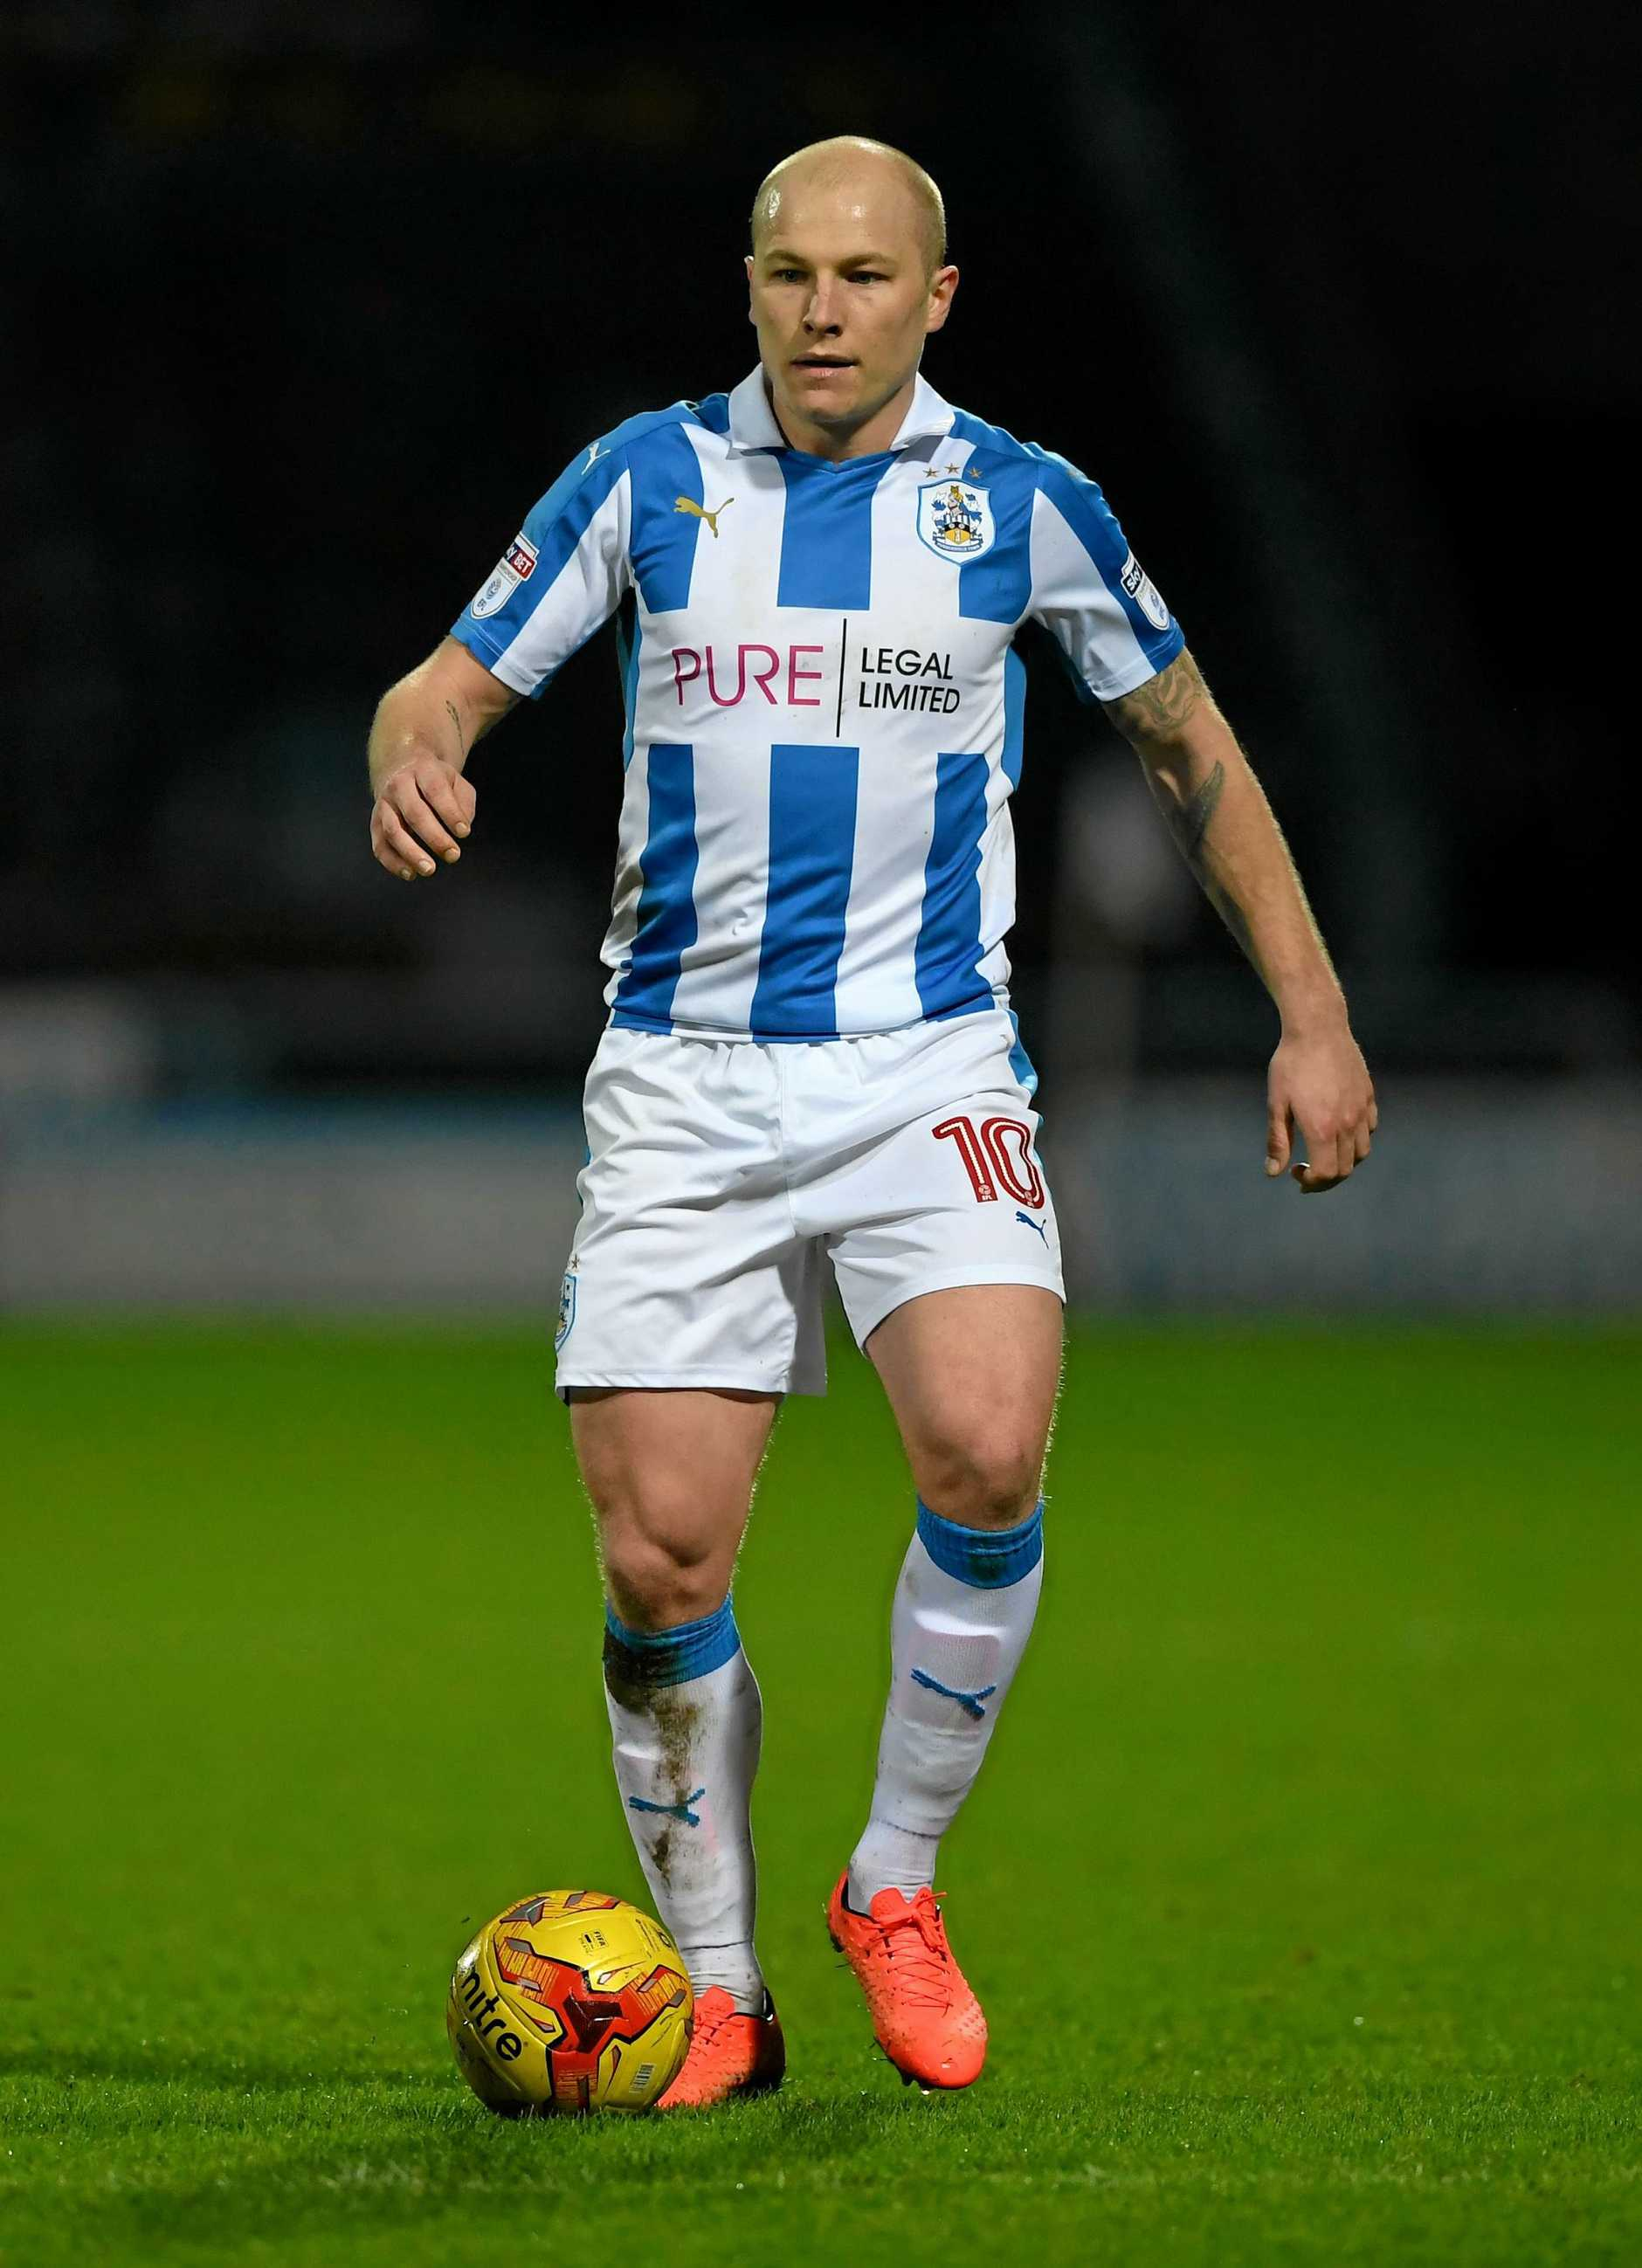 Aaron Mooy helped Huddersfield defeat Yorkshire rival Leeds in the English Championship.